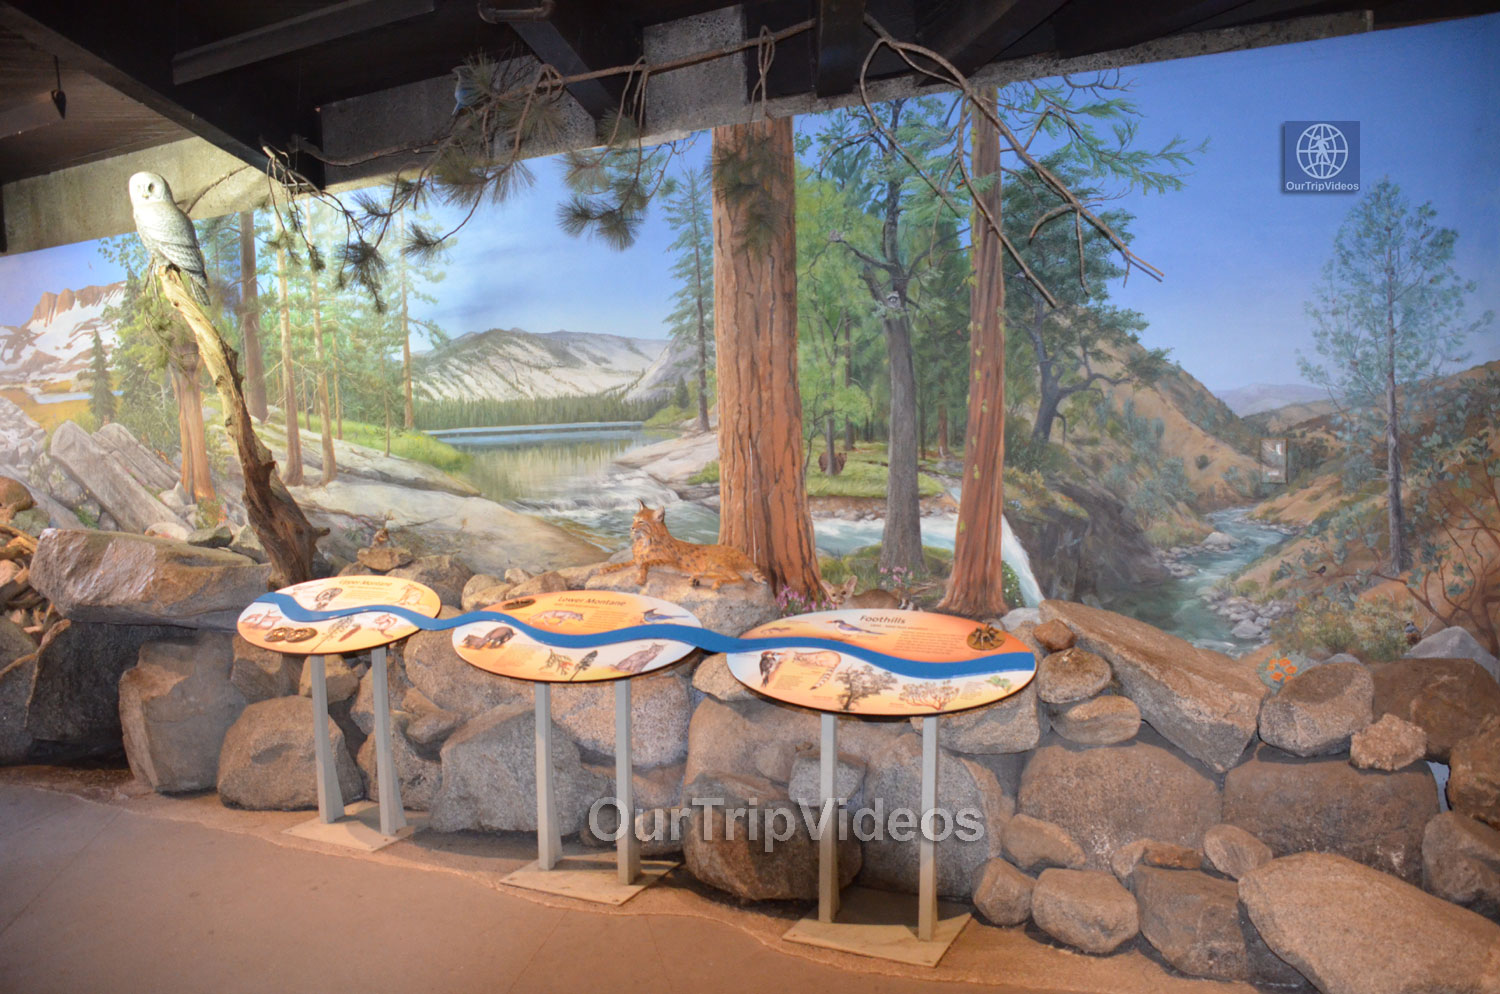 Yosemite National Park - Valley Visitor Center, Yosemite Valley, CA, USA - Picture 21 of 25